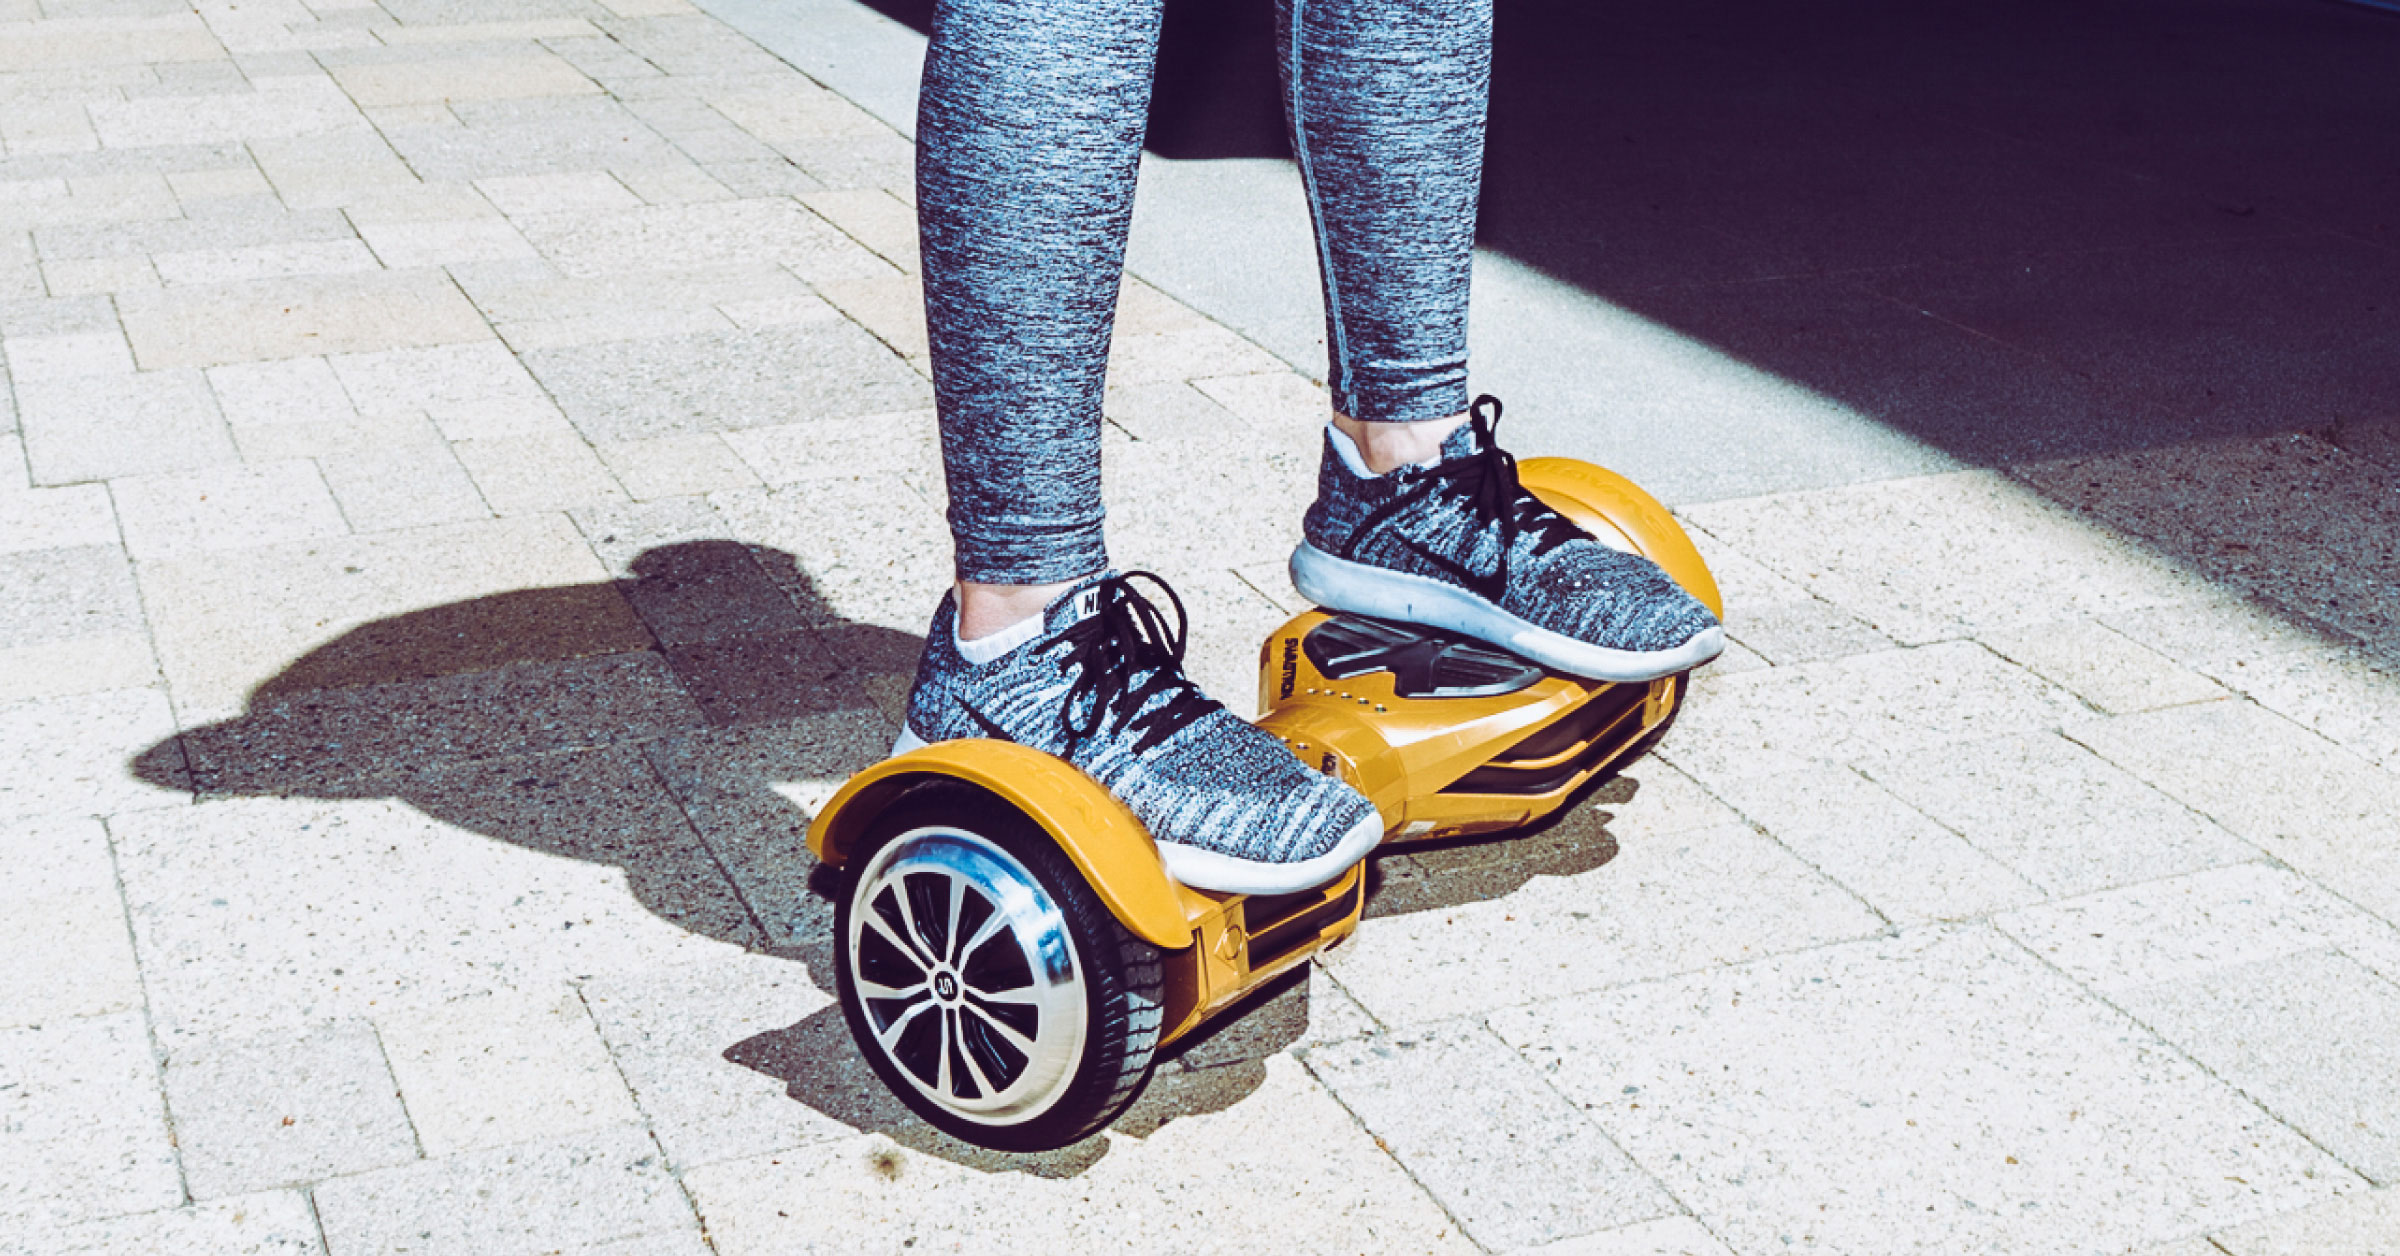 A Hoverboard Sometimes Called Self Balancing Scooter Or Smart Balance Board Is Comprised Of Two Motorized Wheels